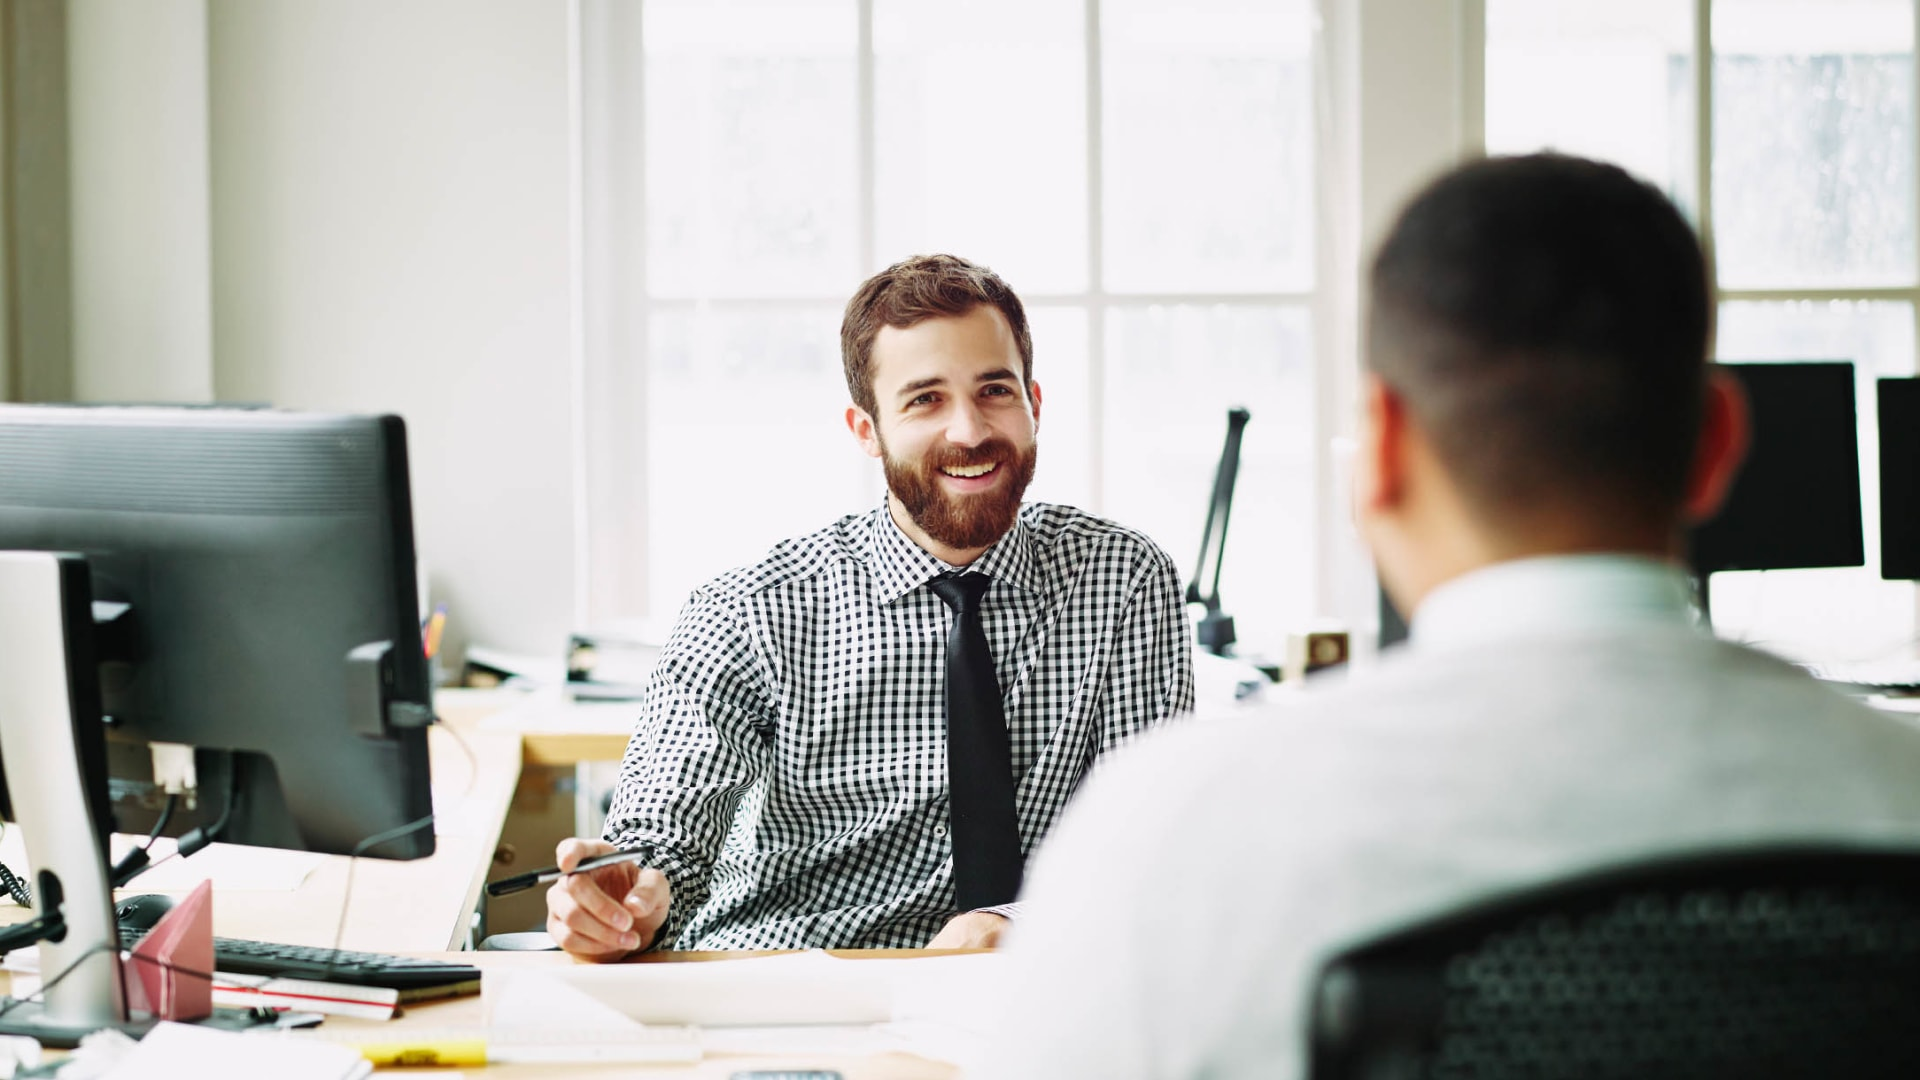 6 Times Your Sales Skills Determine Your Future